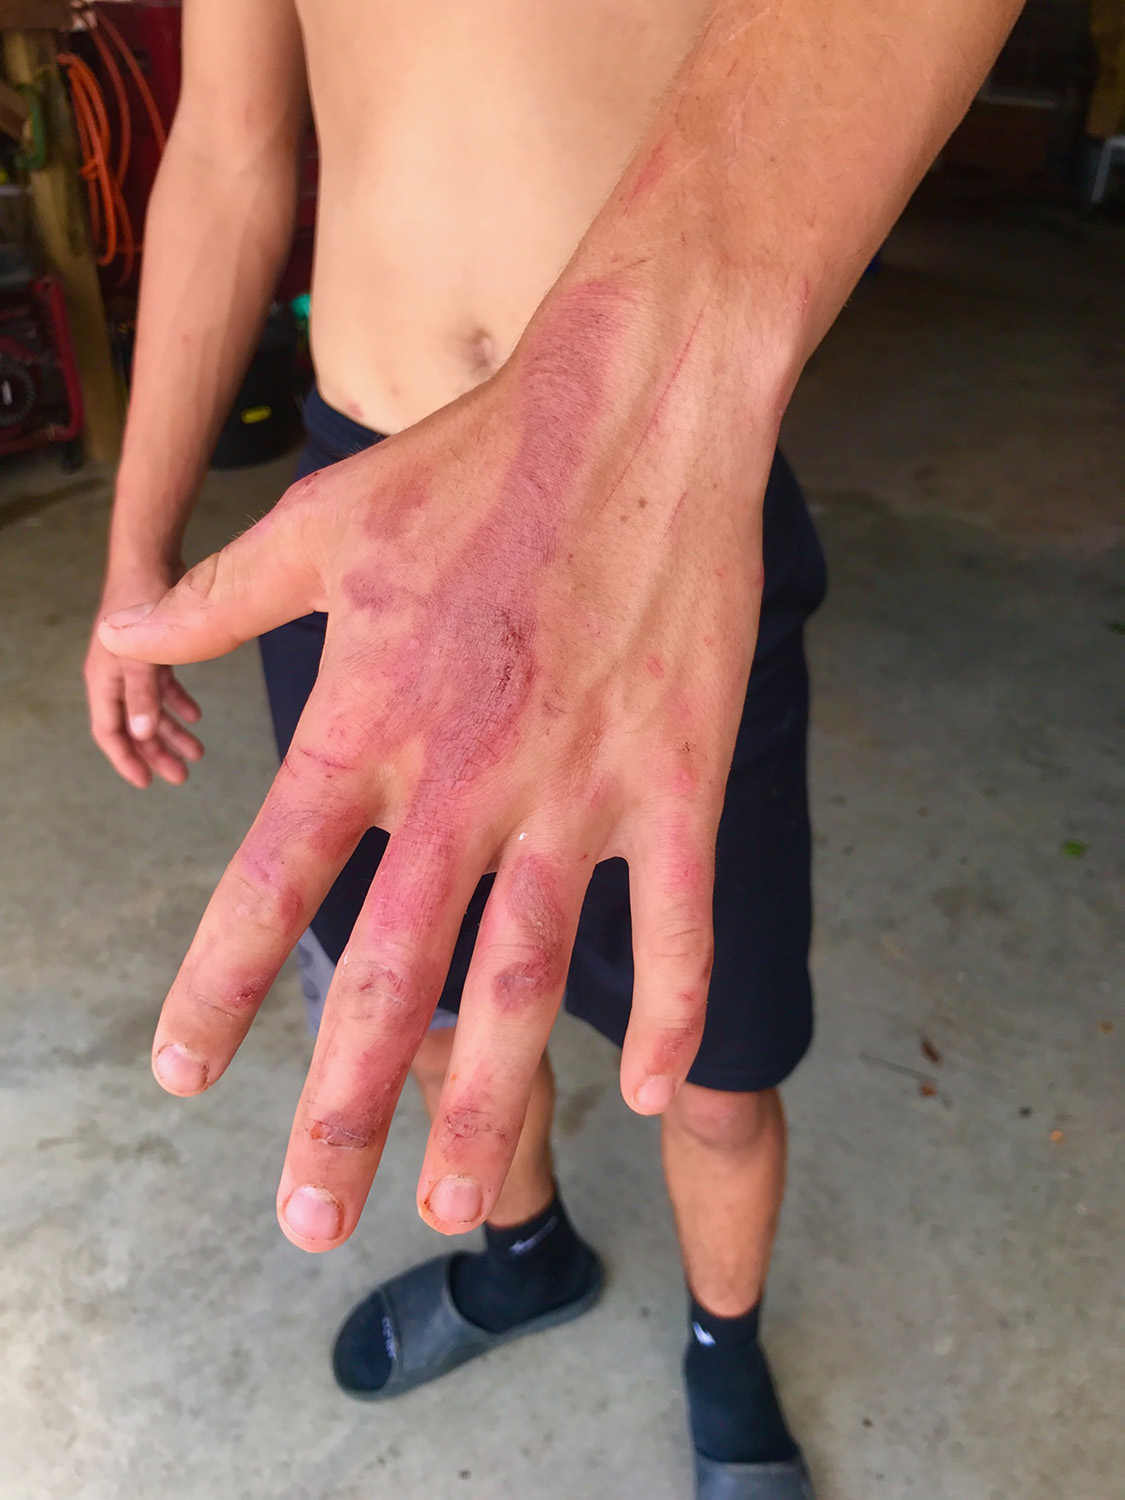 Gage Williams' hand